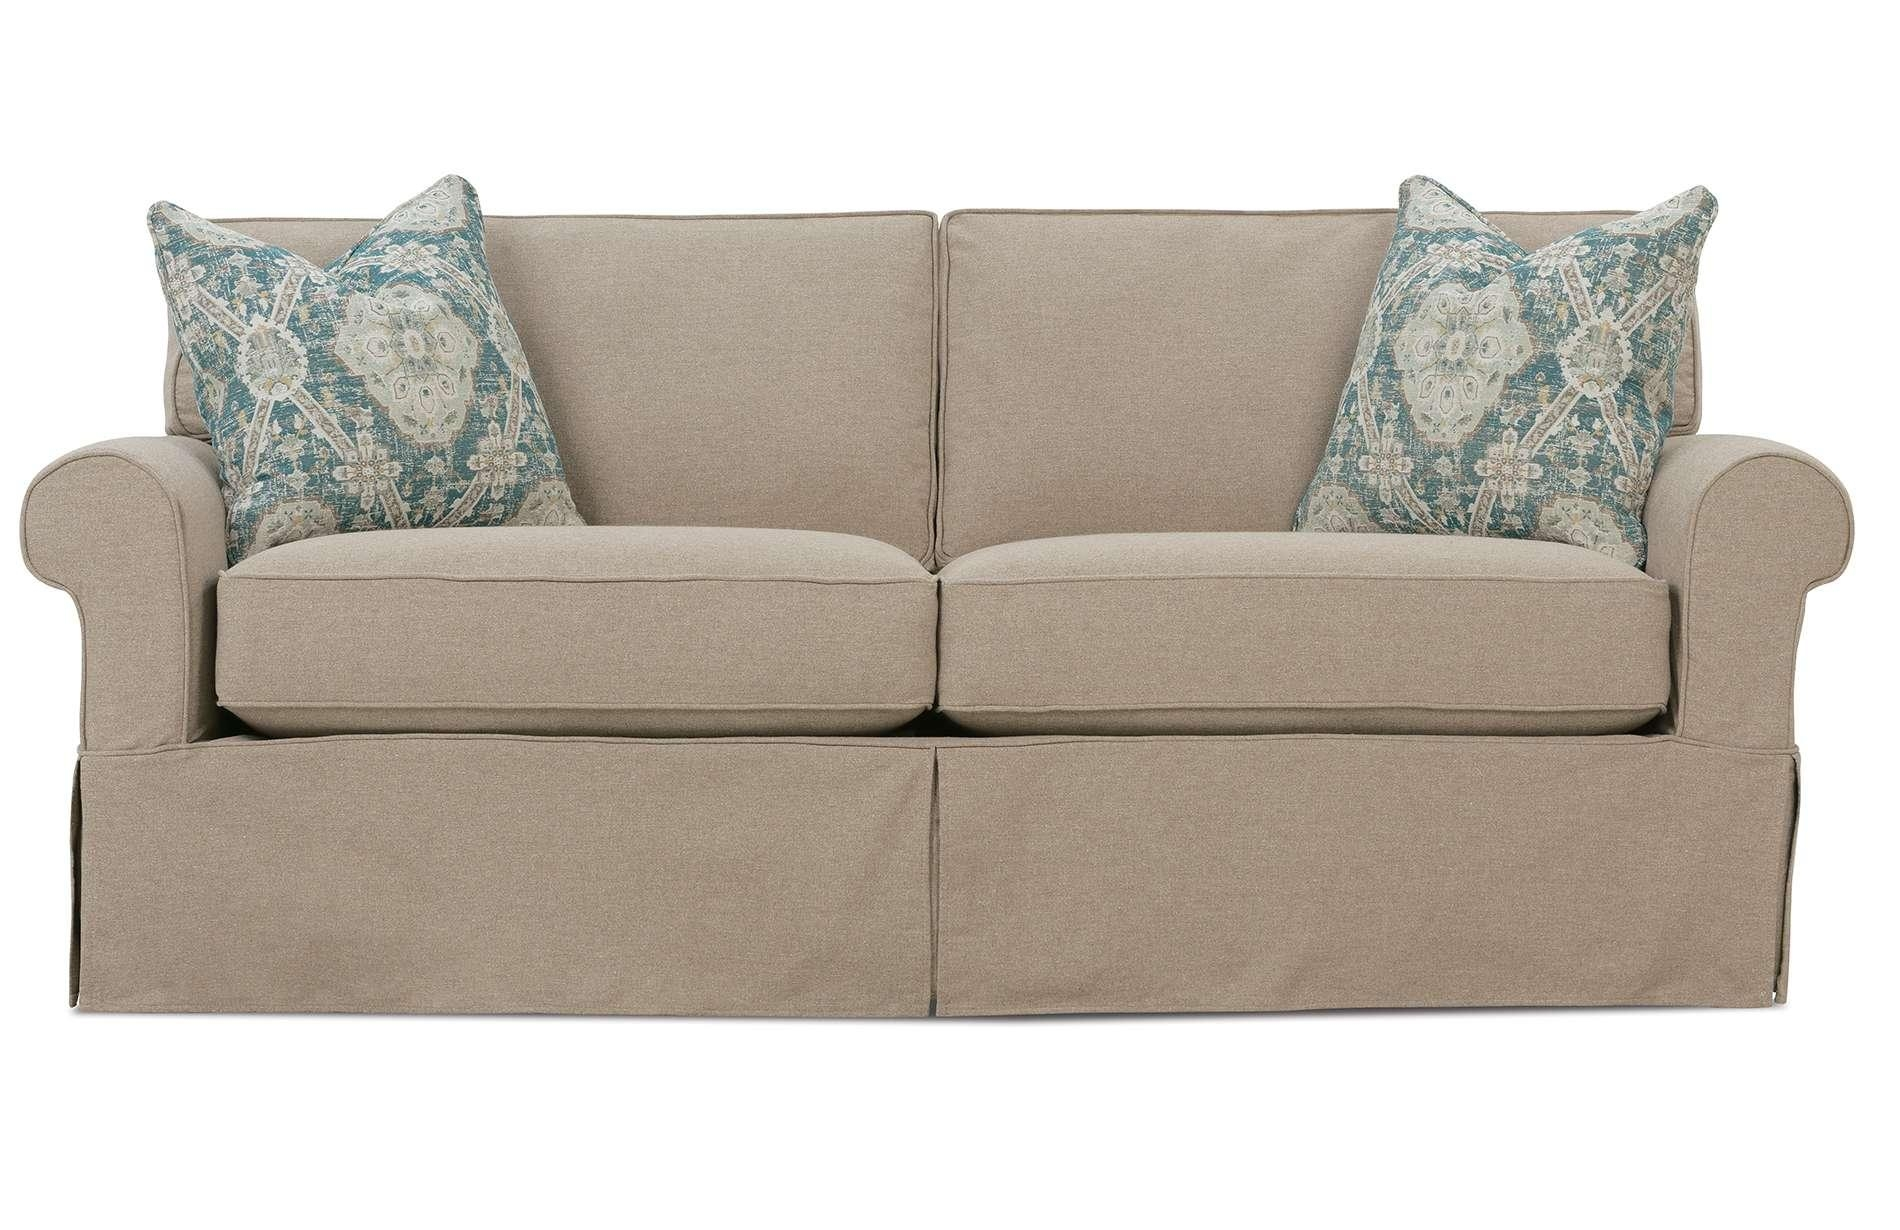 rowe nantucket sofa slipcover replacement curved sectional sofas canada 20 43 choices of slipcovers ideas